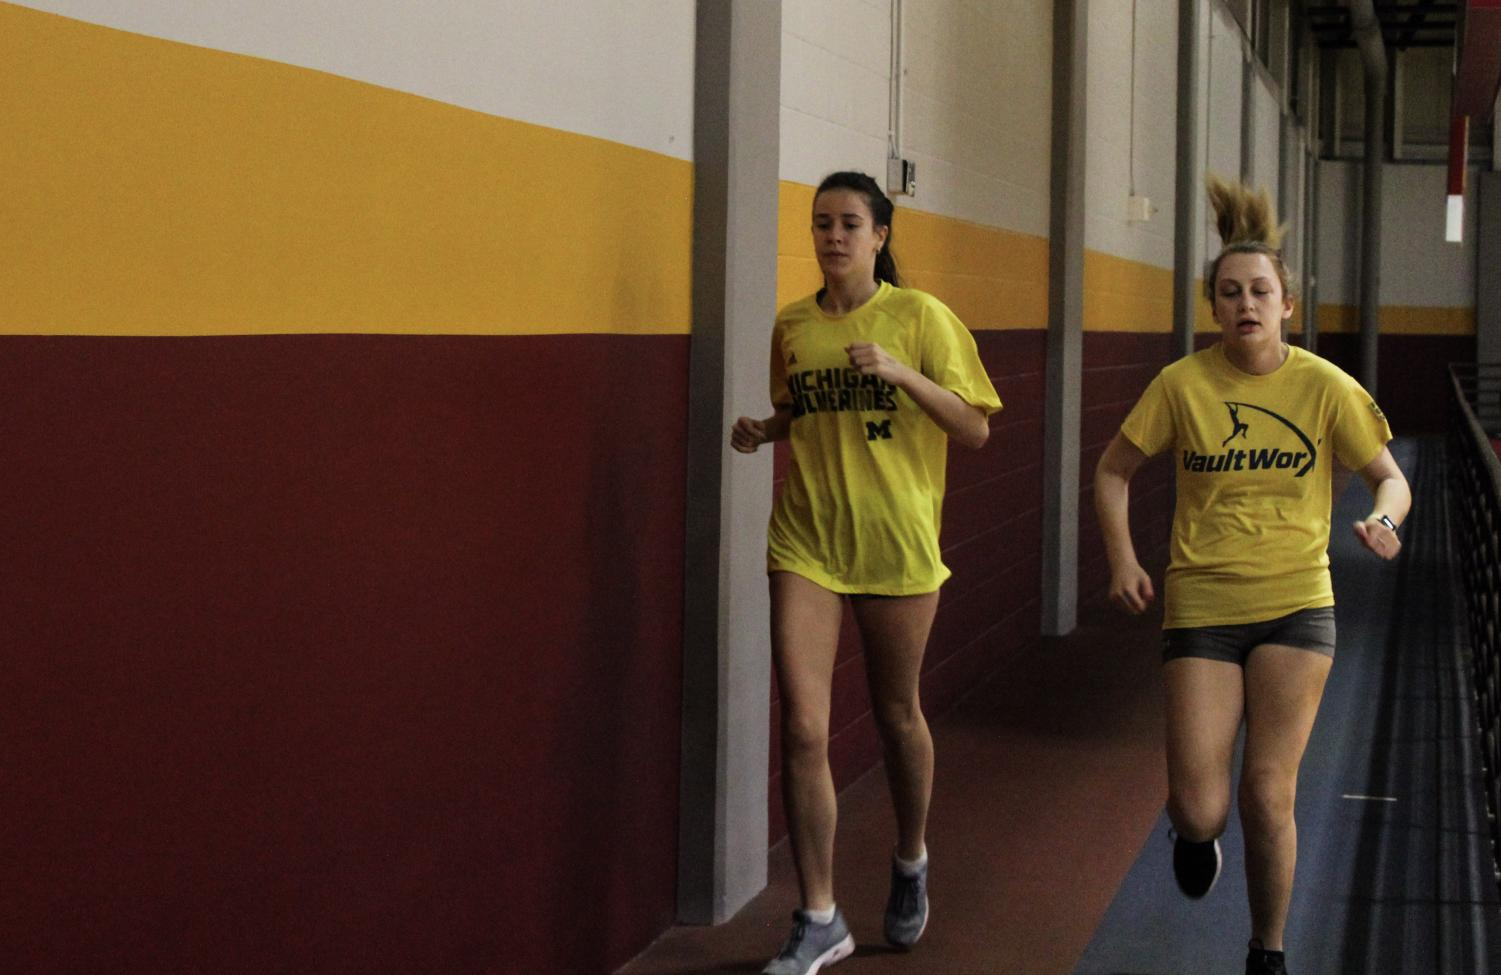 Mass Communication junior Ellen Harper (left) and freshman Mikaela Bradley (right) finish running a lap at track and field practice in the University Sports Complex on Friday, Jan. 10, 2020. The men's and women's teams are preparing for their next meet.